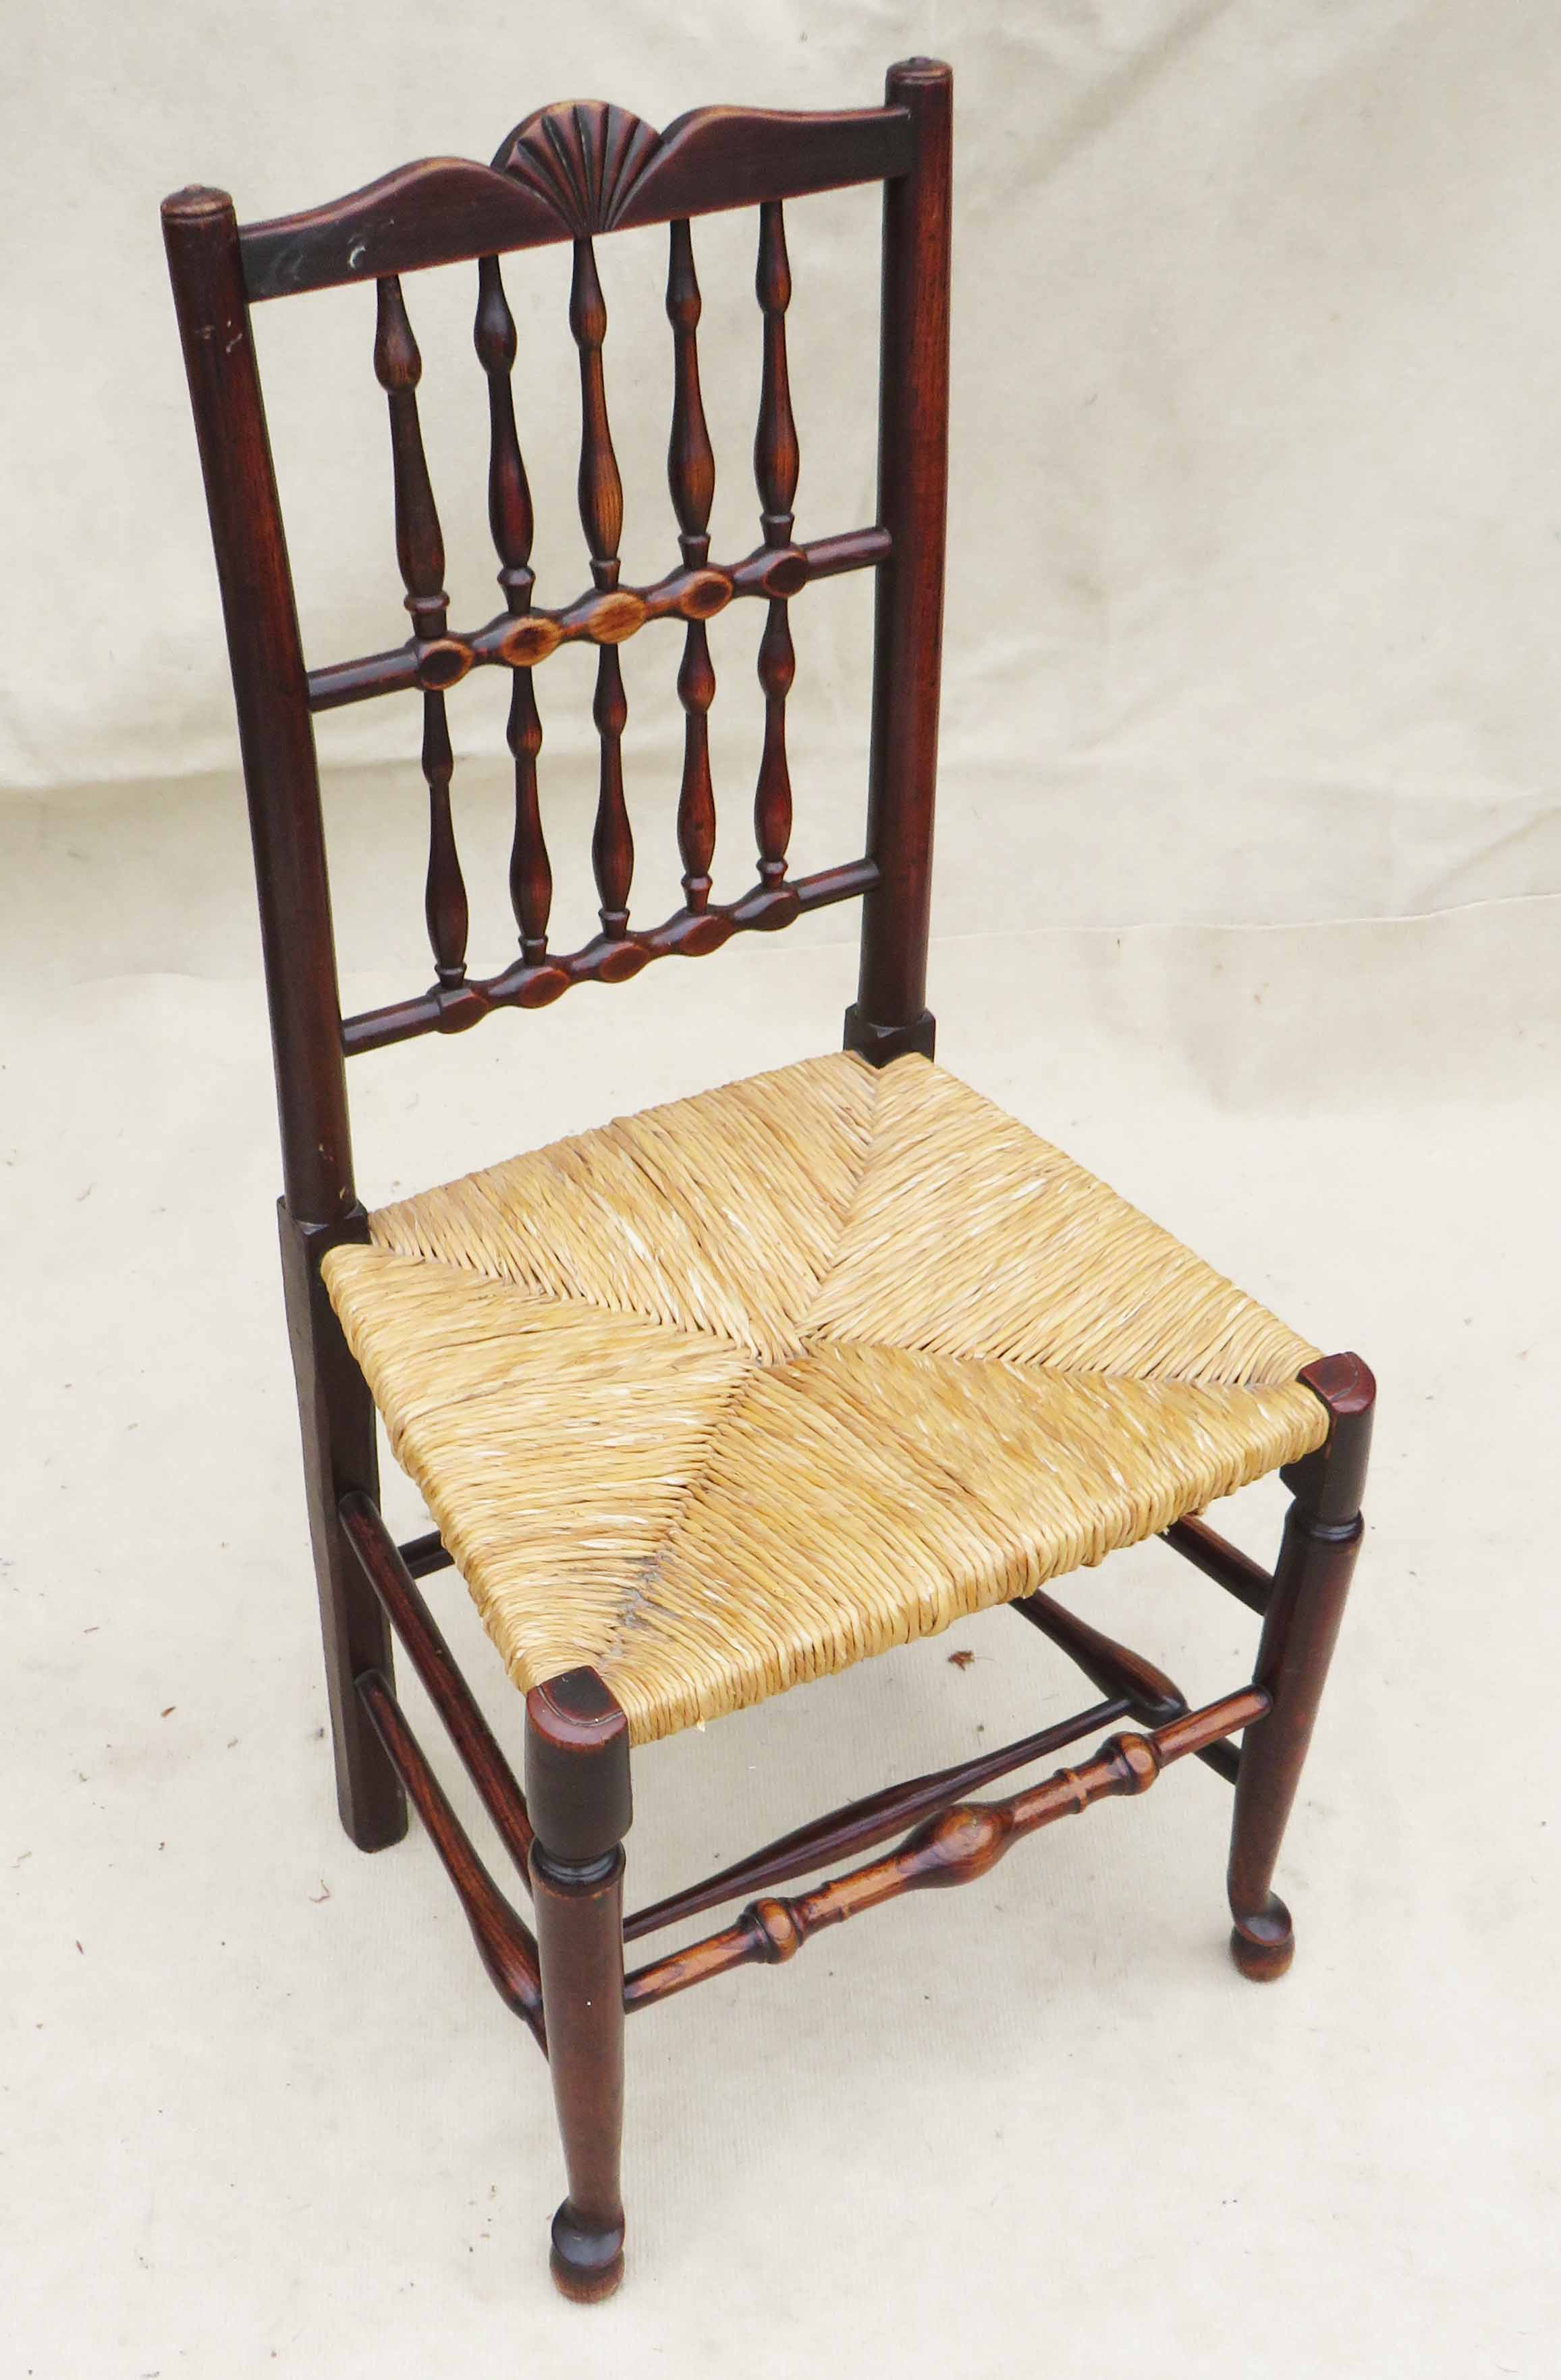 Matched Set Of 8 Spindle Back Dining Chairs, Early 19th Century - Image 6 of 12